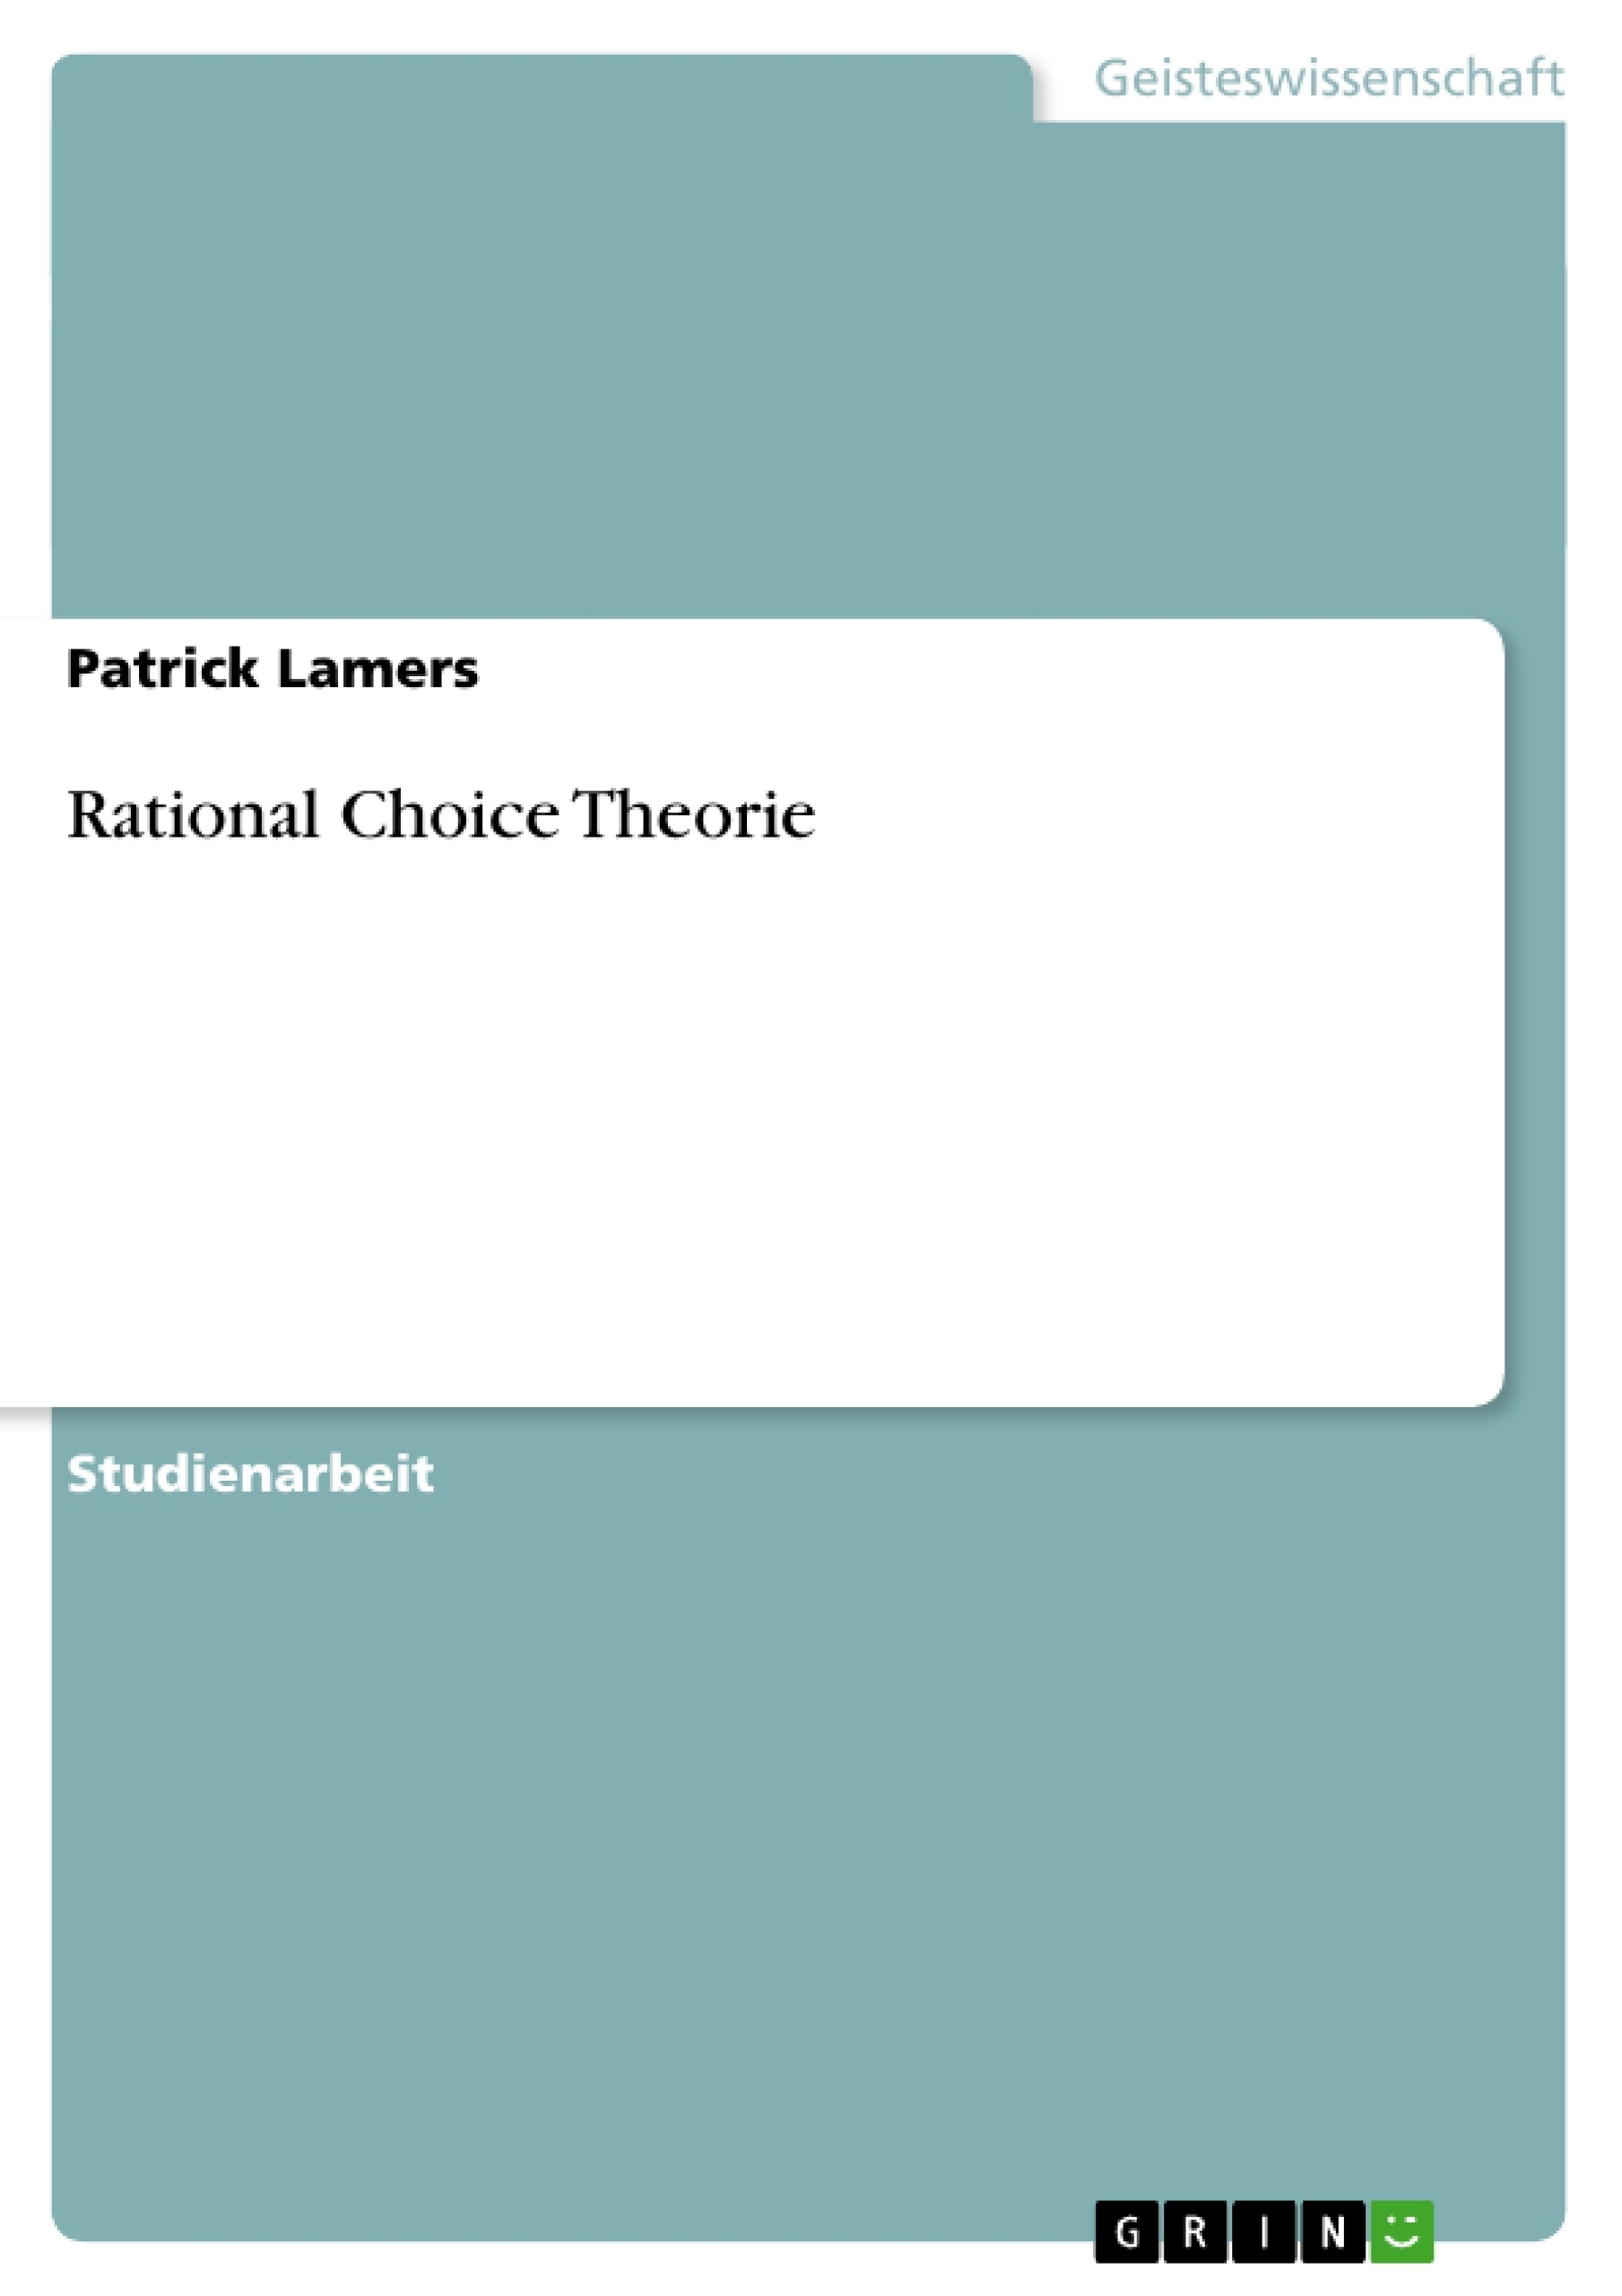 Titel: Rational Choice Theorie